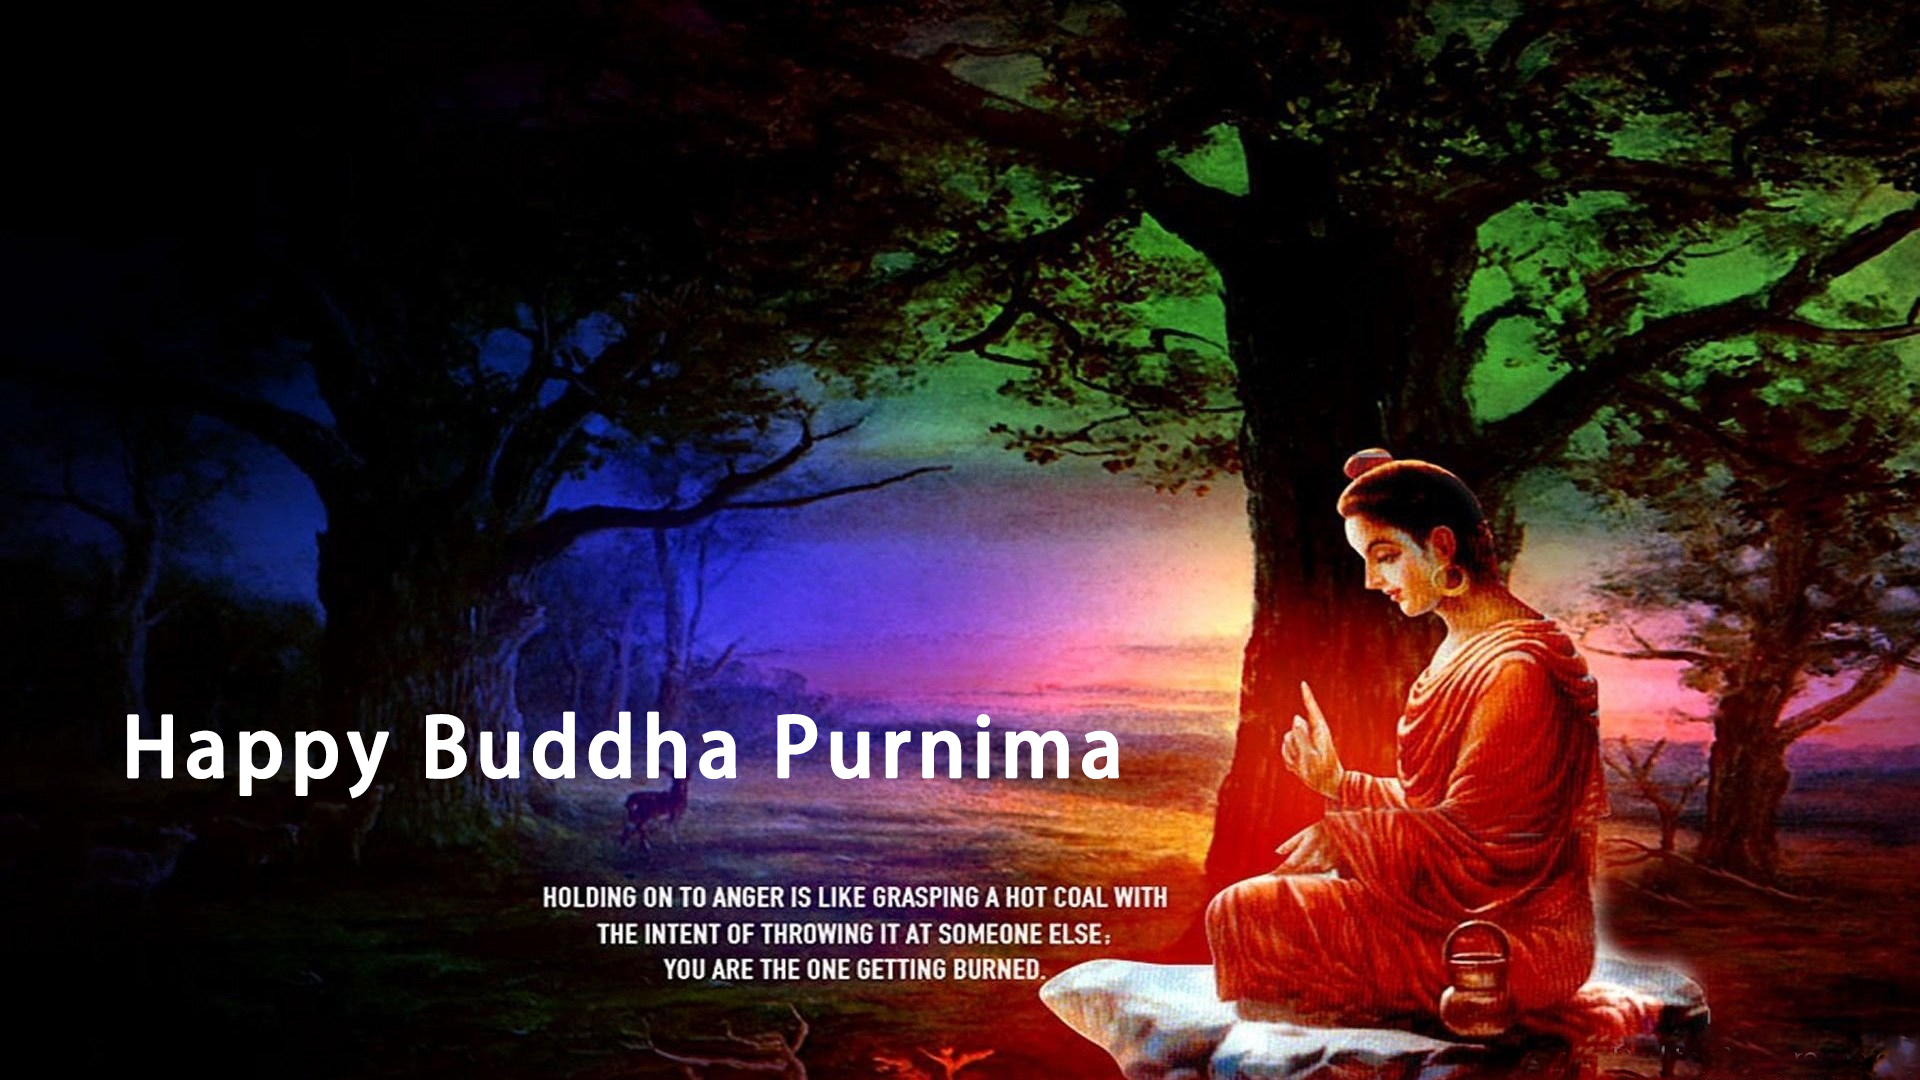 Happy Buddha Purnima Wallpapers Download